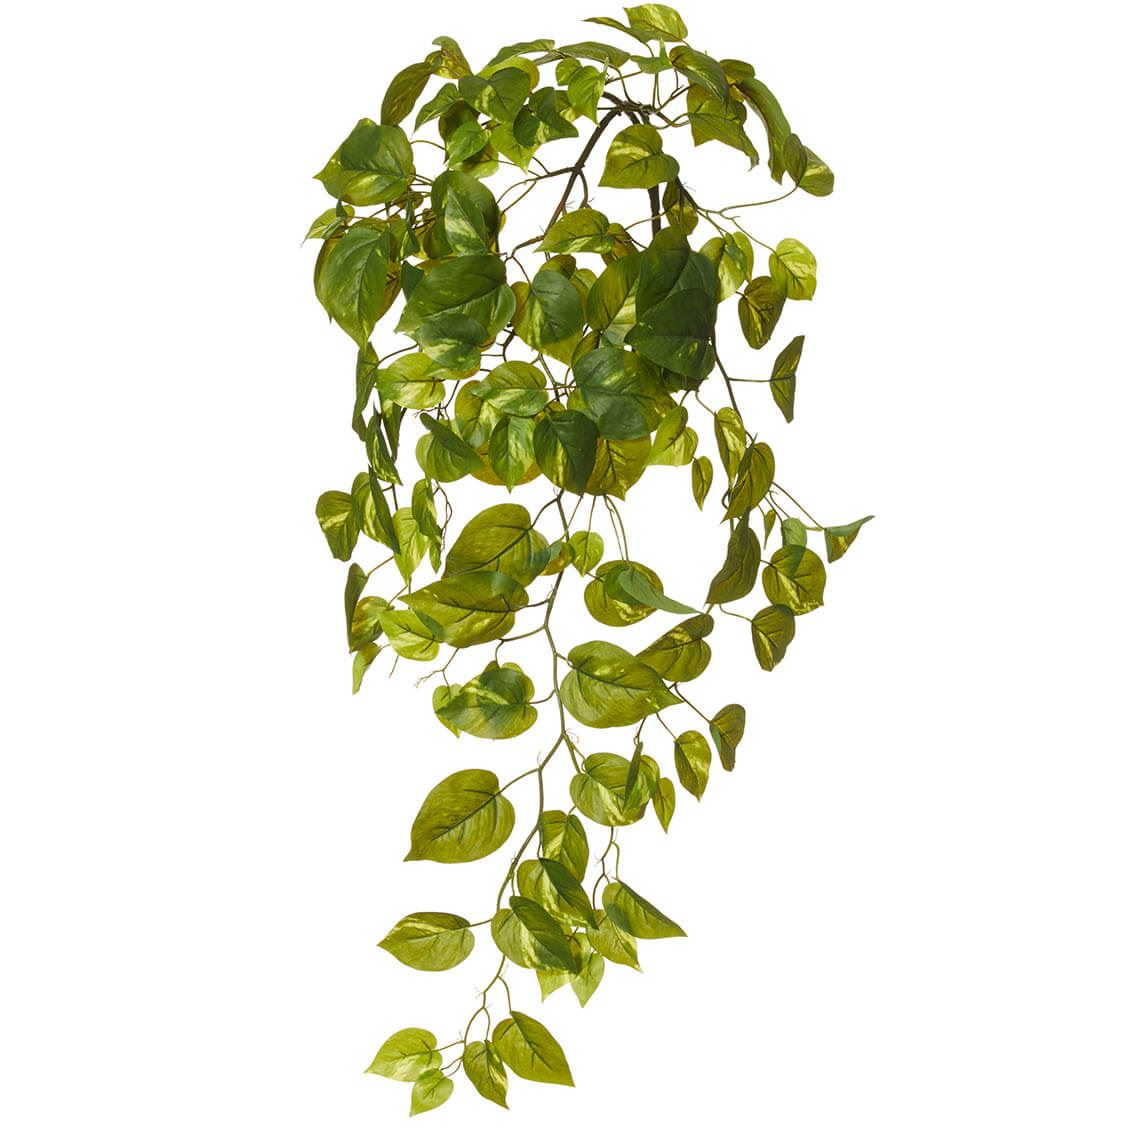 Pothos Vine Size W 30cm x D 20cm x H 60cm in Green Plastic/Wire Freedom by Freedom, a Plants for sale on Style Sourcebook